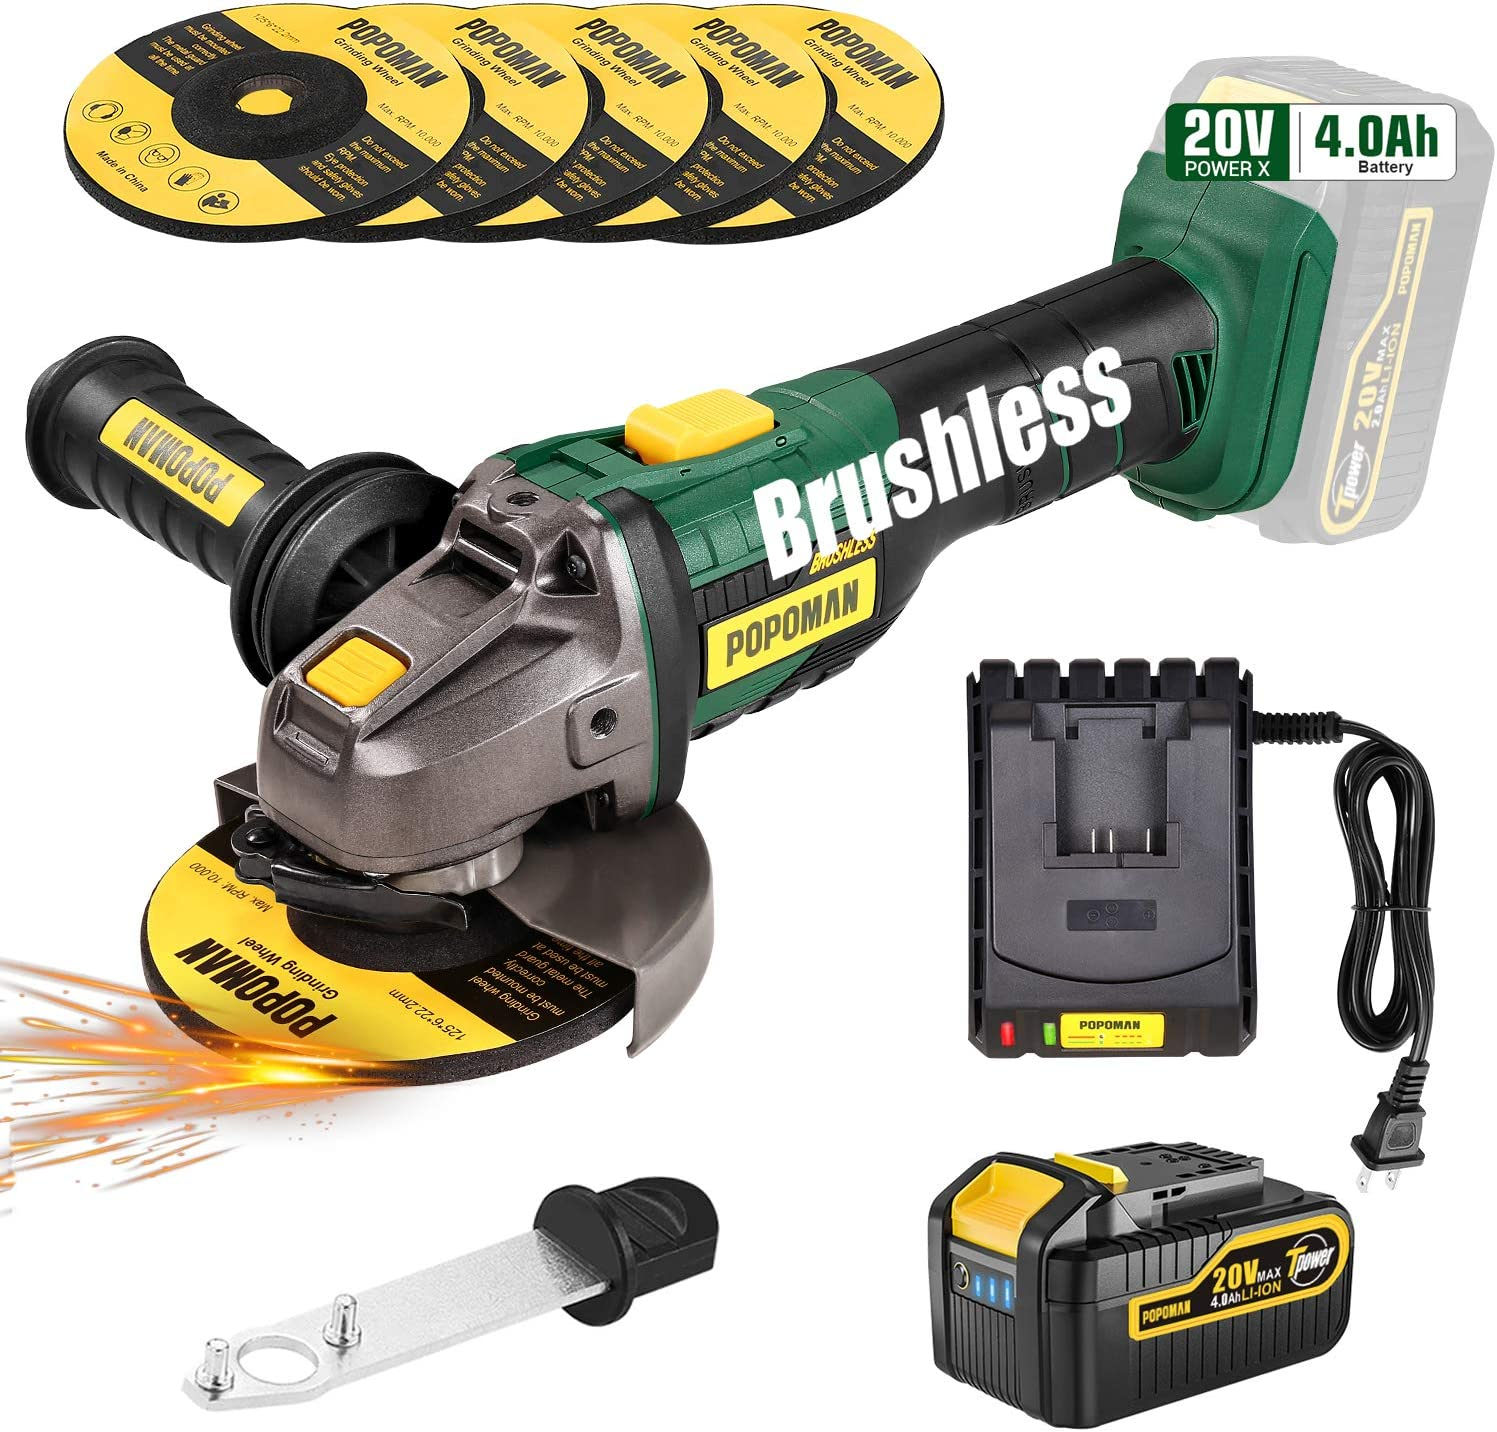 Brushless Angle Grinder with 4.0Ah Lithium-ion Battery